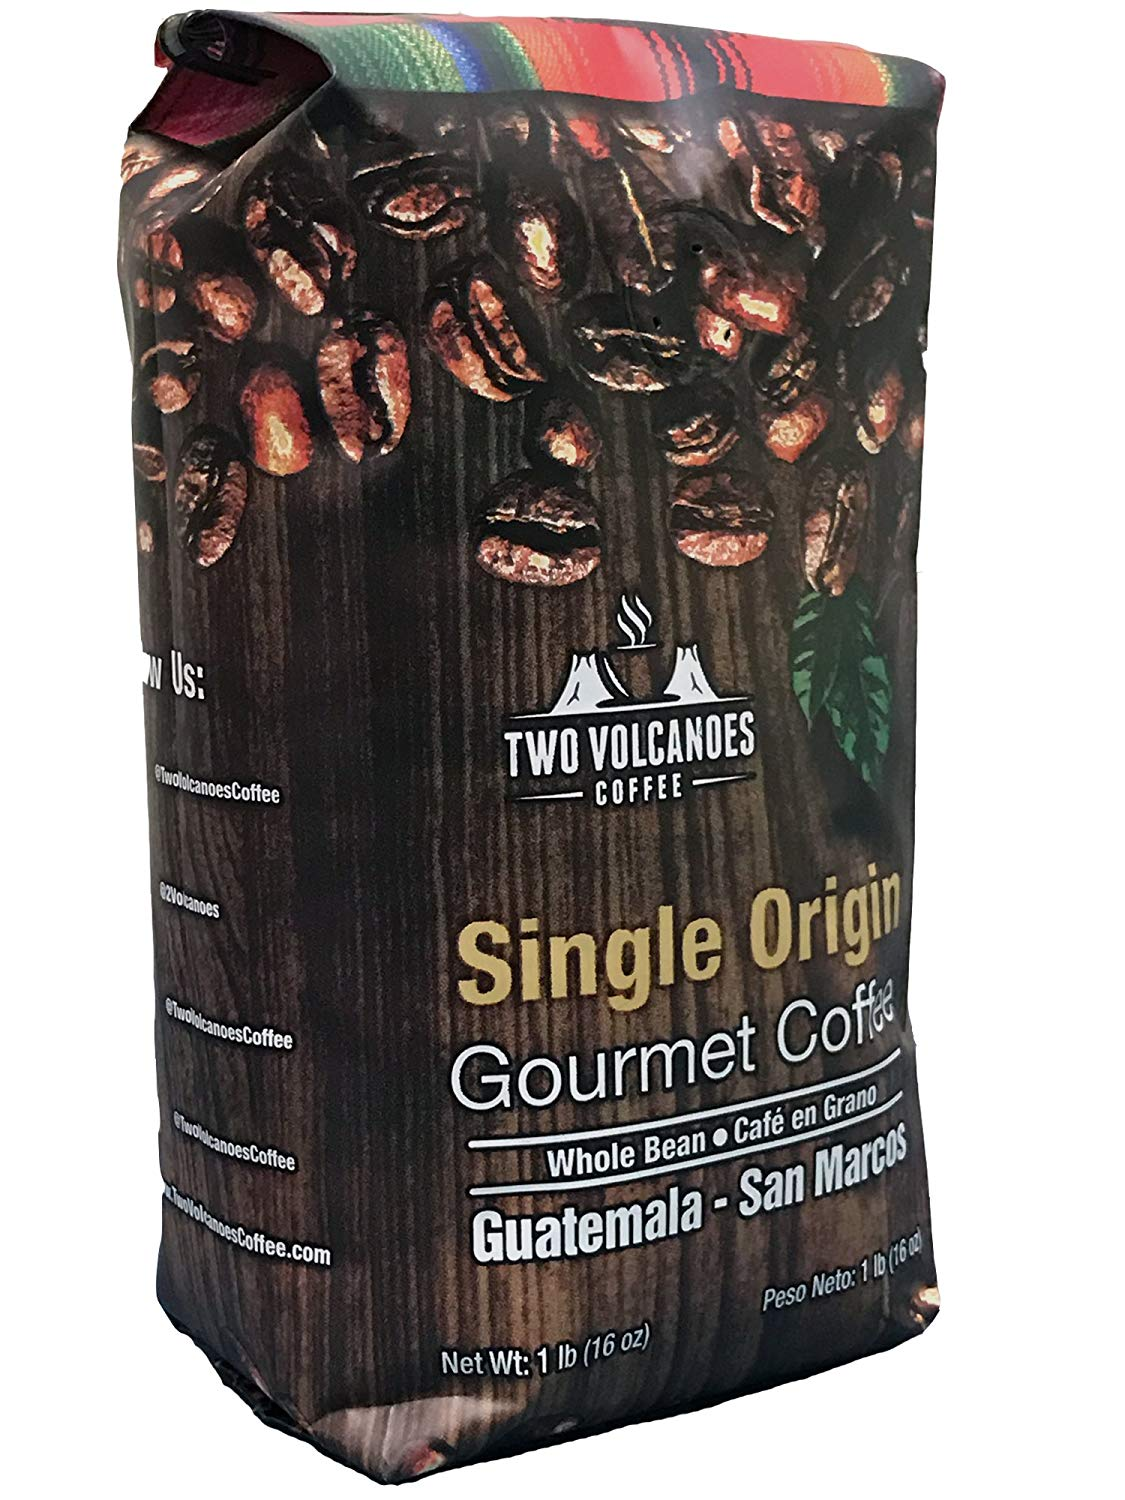 Two Volcanoes Coffee - Gourmet Guatemala Whole Bean Medium Roast Single-Origin Coffee.